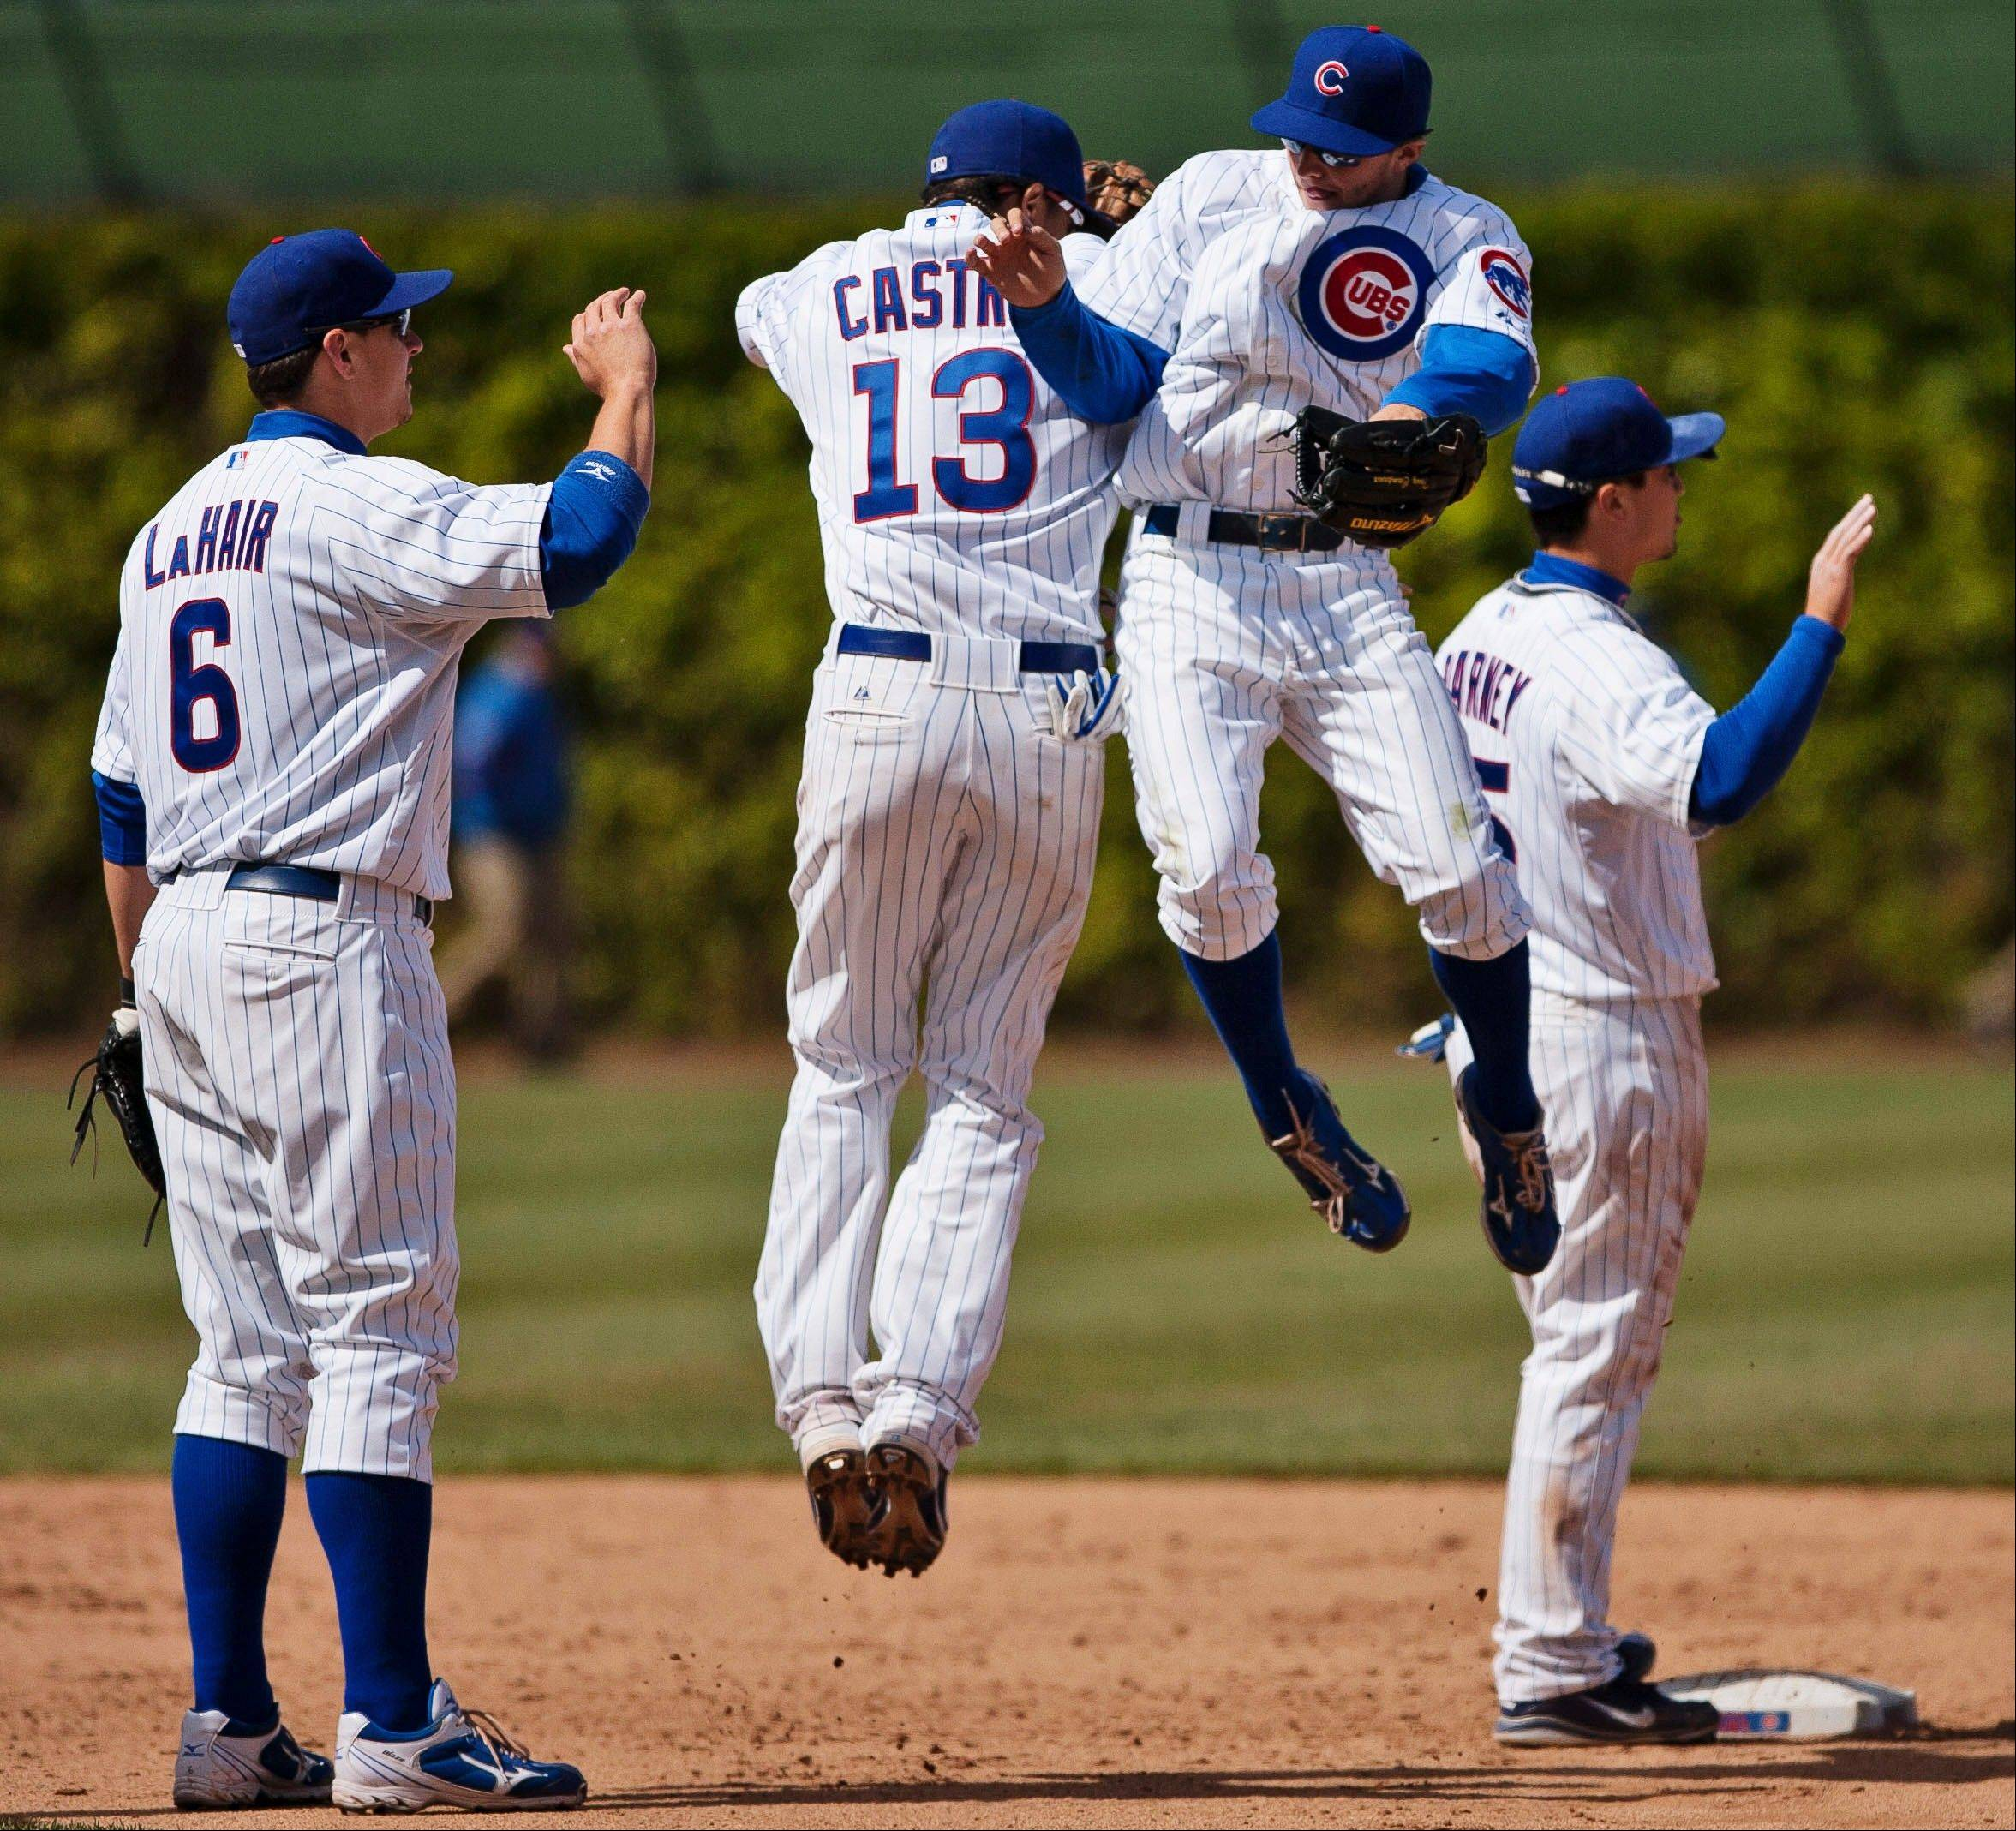 Chicago Cubs' Starlin Castro (13) and Tony Campana leap into each other as they celebrate with Bryan LaHair after defeating the Cincinnati Reds 6-1 Saturday at Wrigley Field.